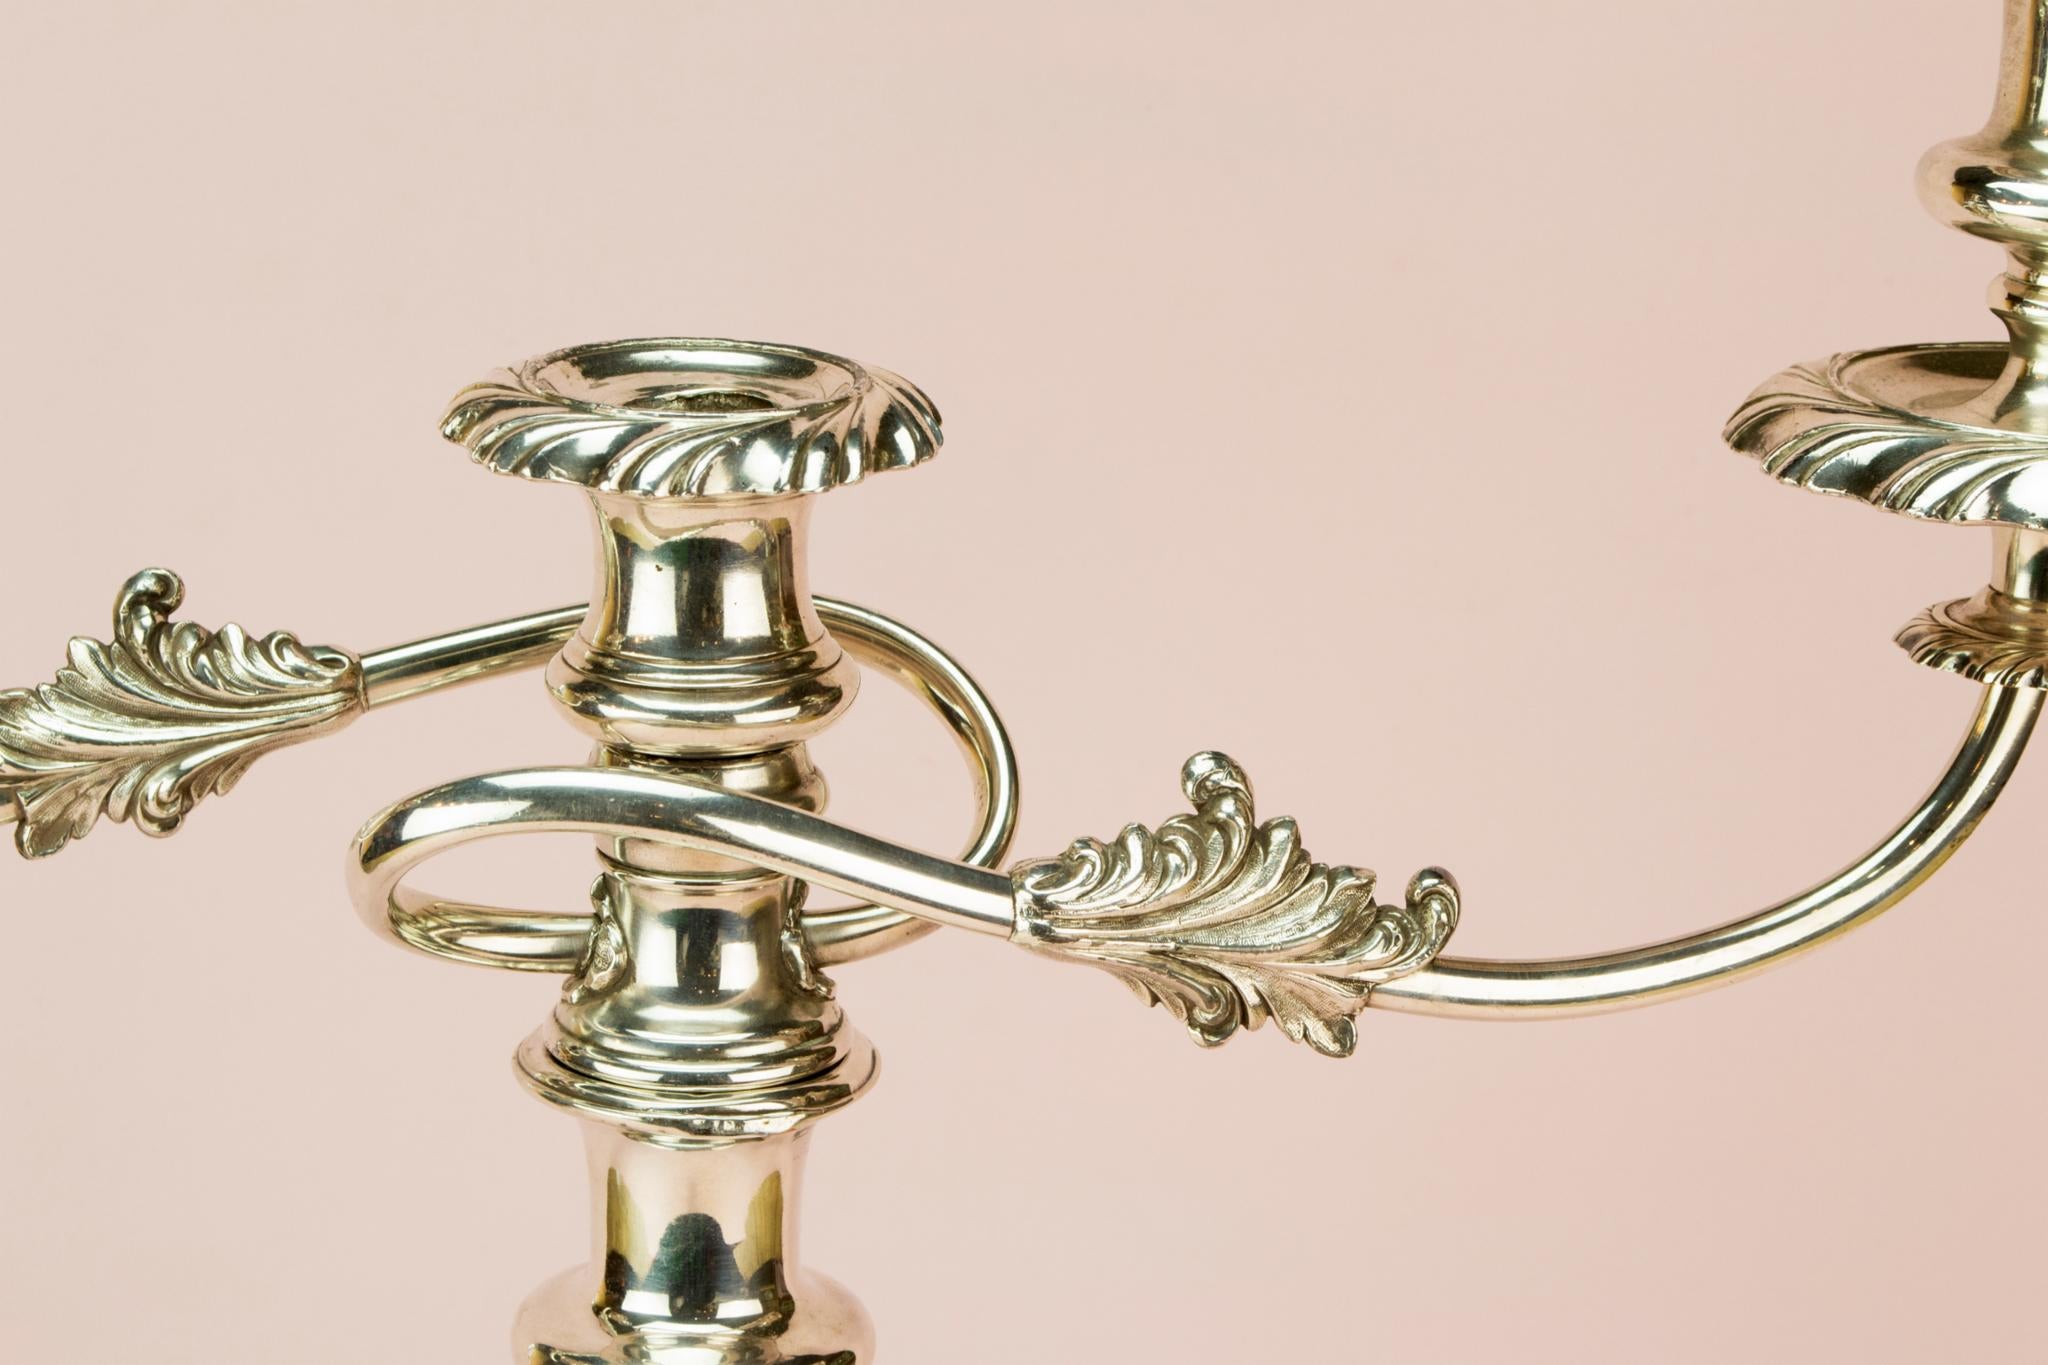 Large 2 Branch Silver Plated Candelabra, English 19th century